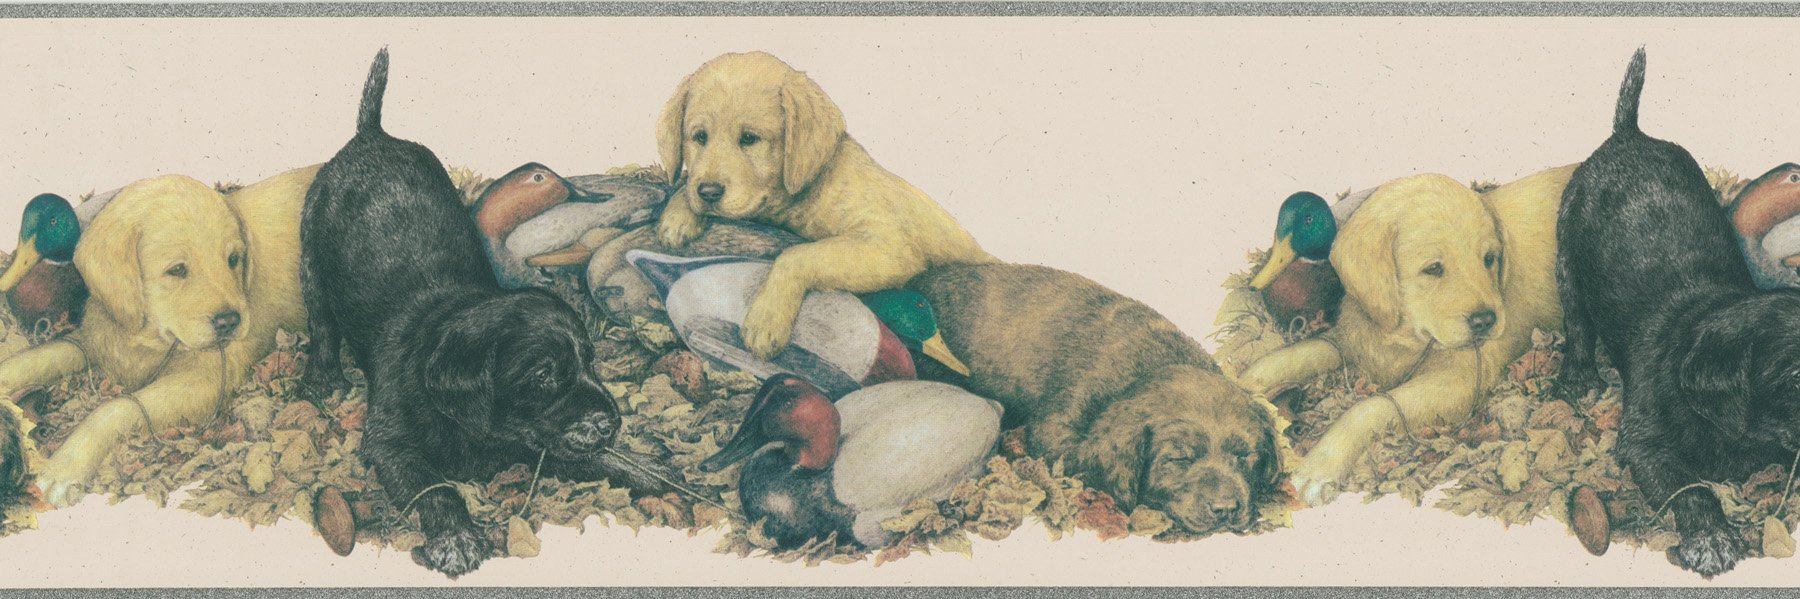 Brewster 418B091 Borders and More Dogs & Ducks Wall Border, 9-Inch by 180-Inch